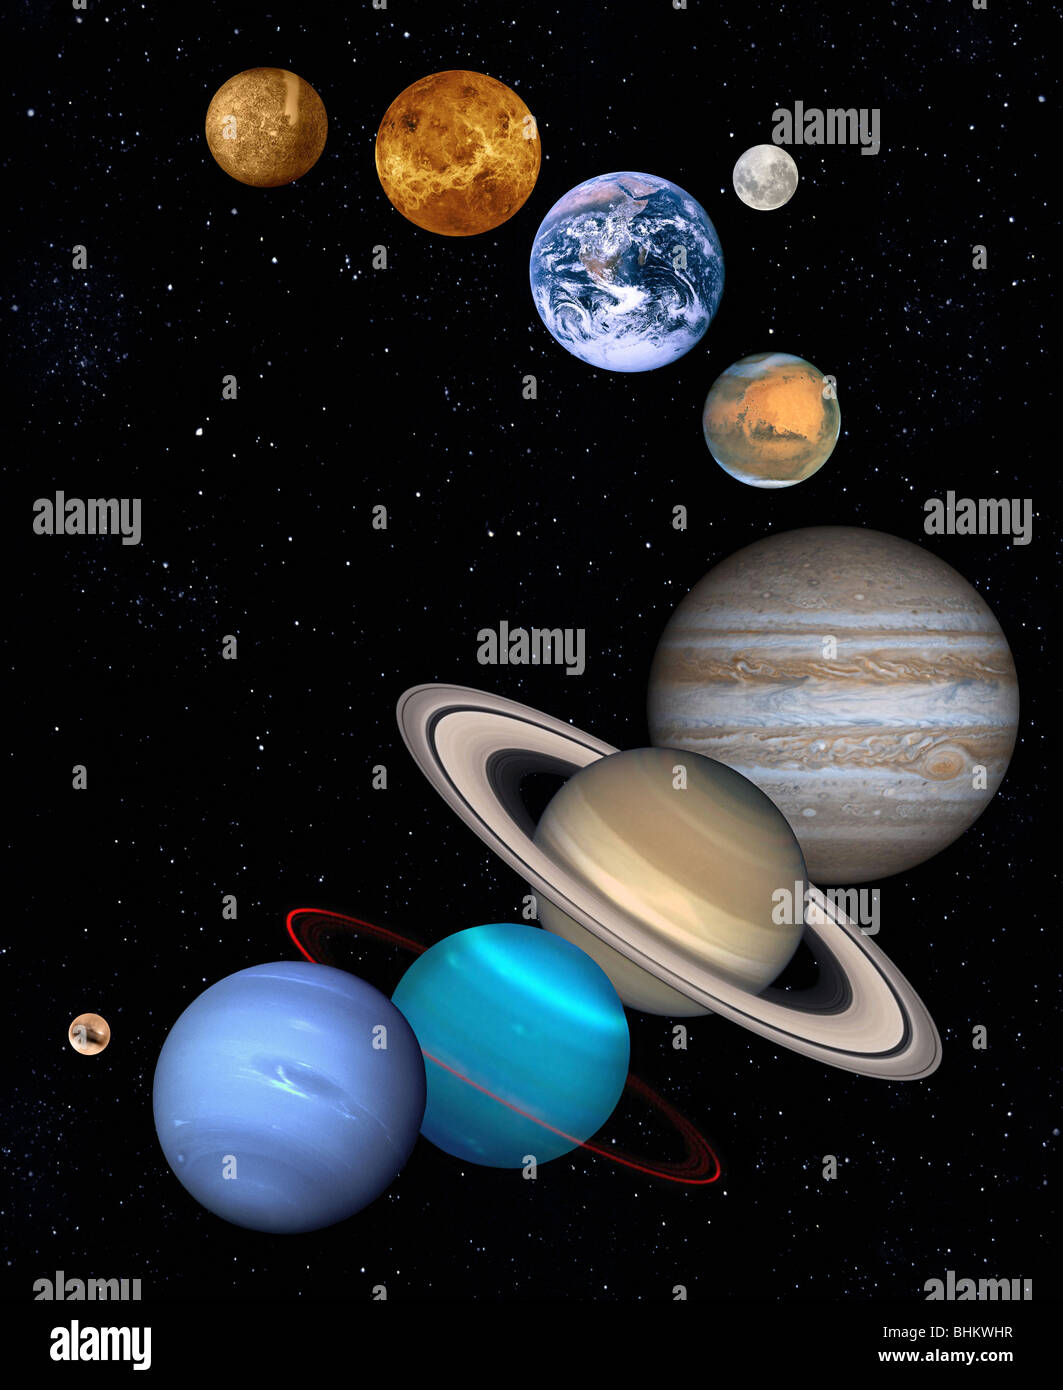 Planets of our Solar System not in relative size to each ...